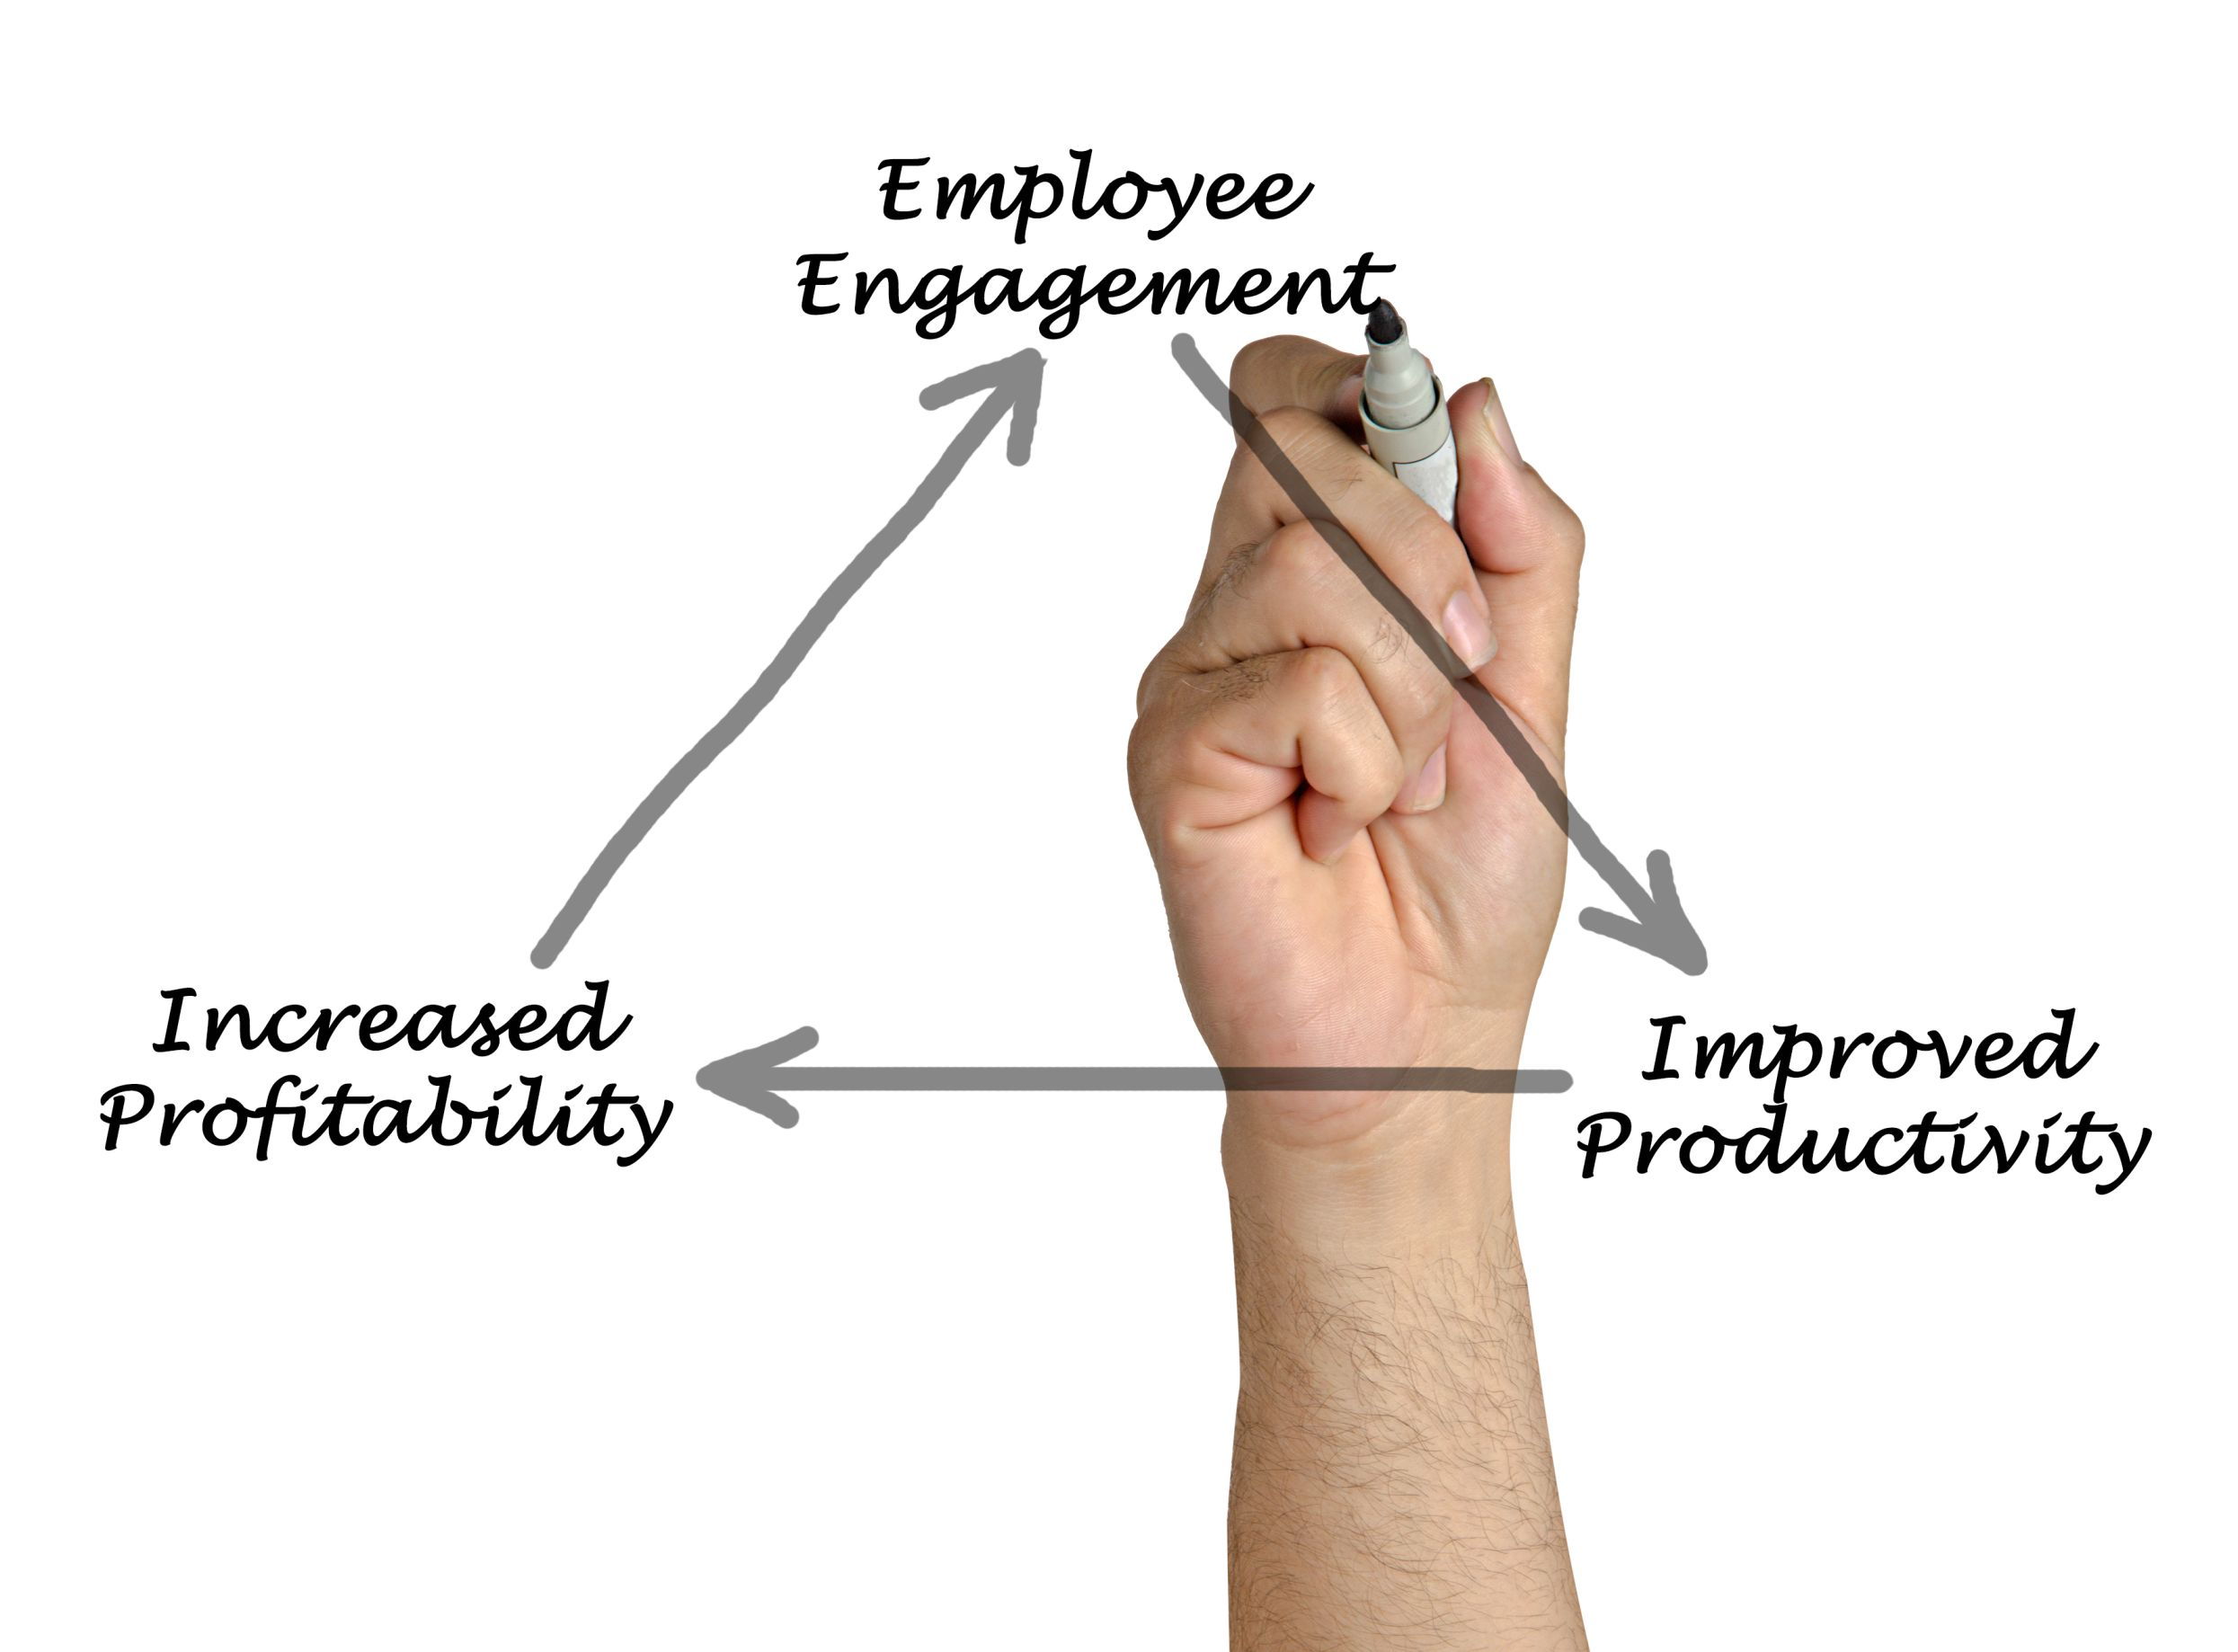 How employee engagement can drive your business forward